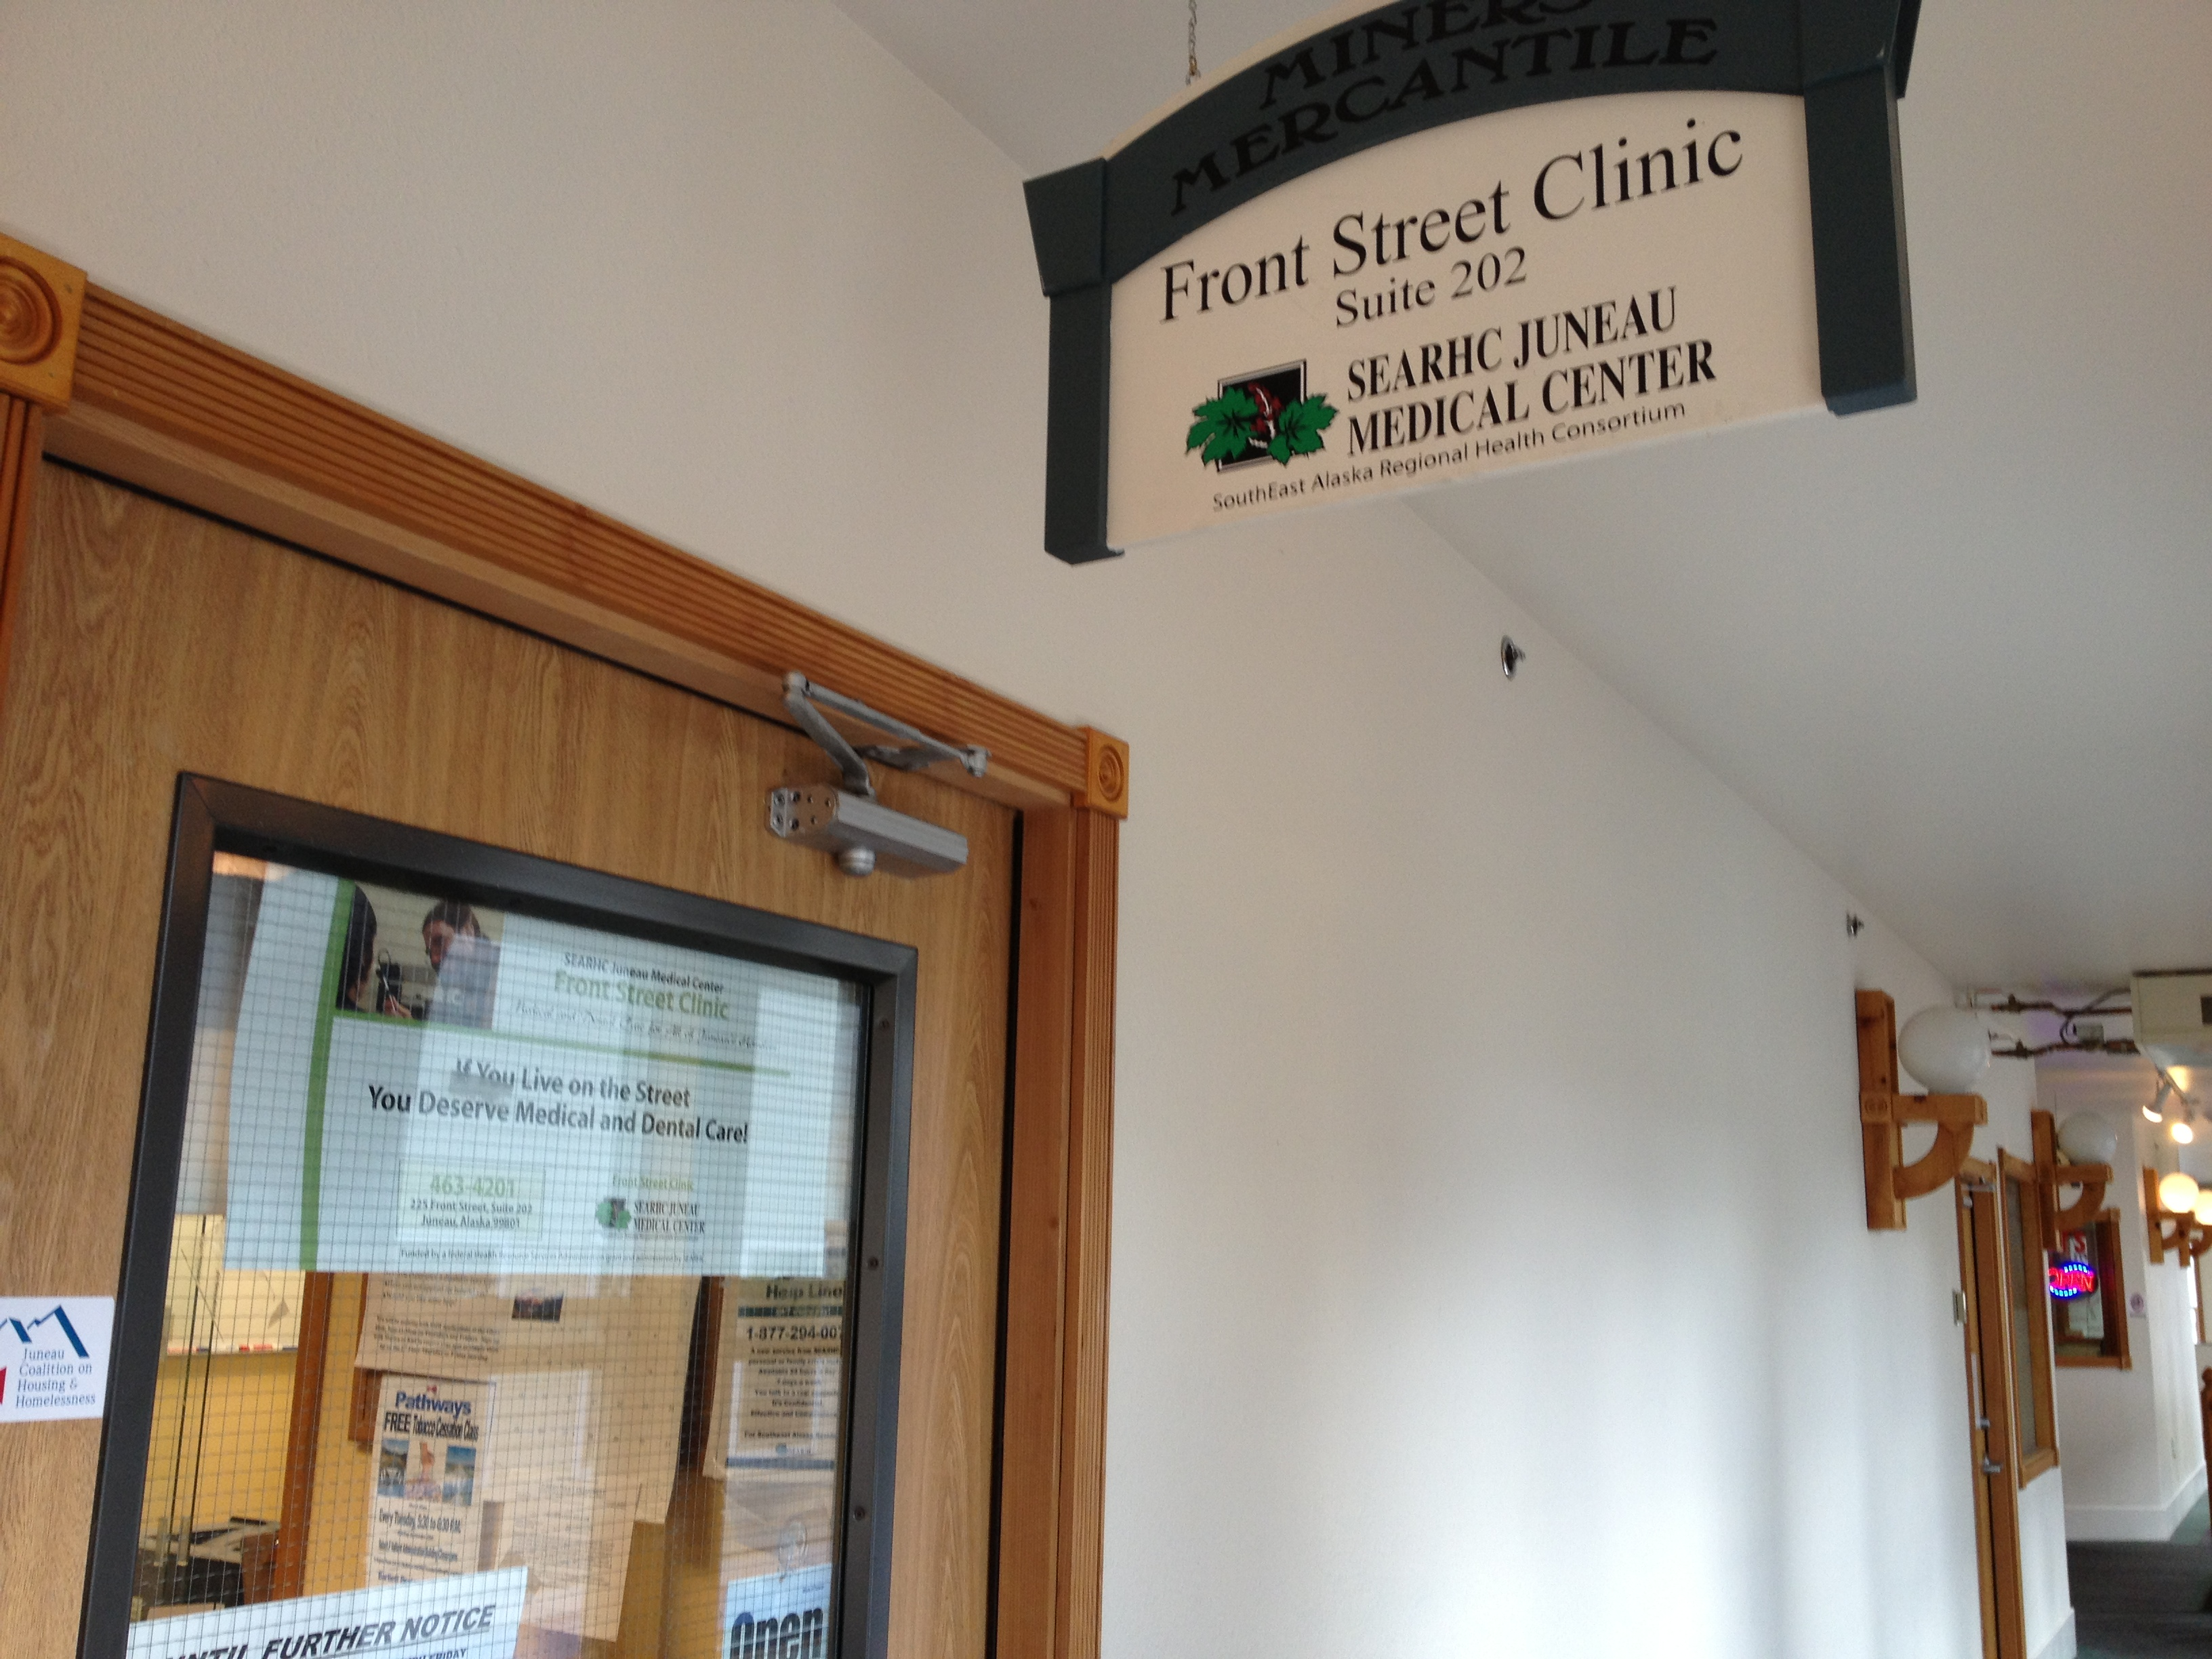 Front Street Clinic is upstairs in the Miners' Mercantile building. It's open Monday through Friday, 8 am to 5 pm. (Photo by Lisa Phu/KTOO)